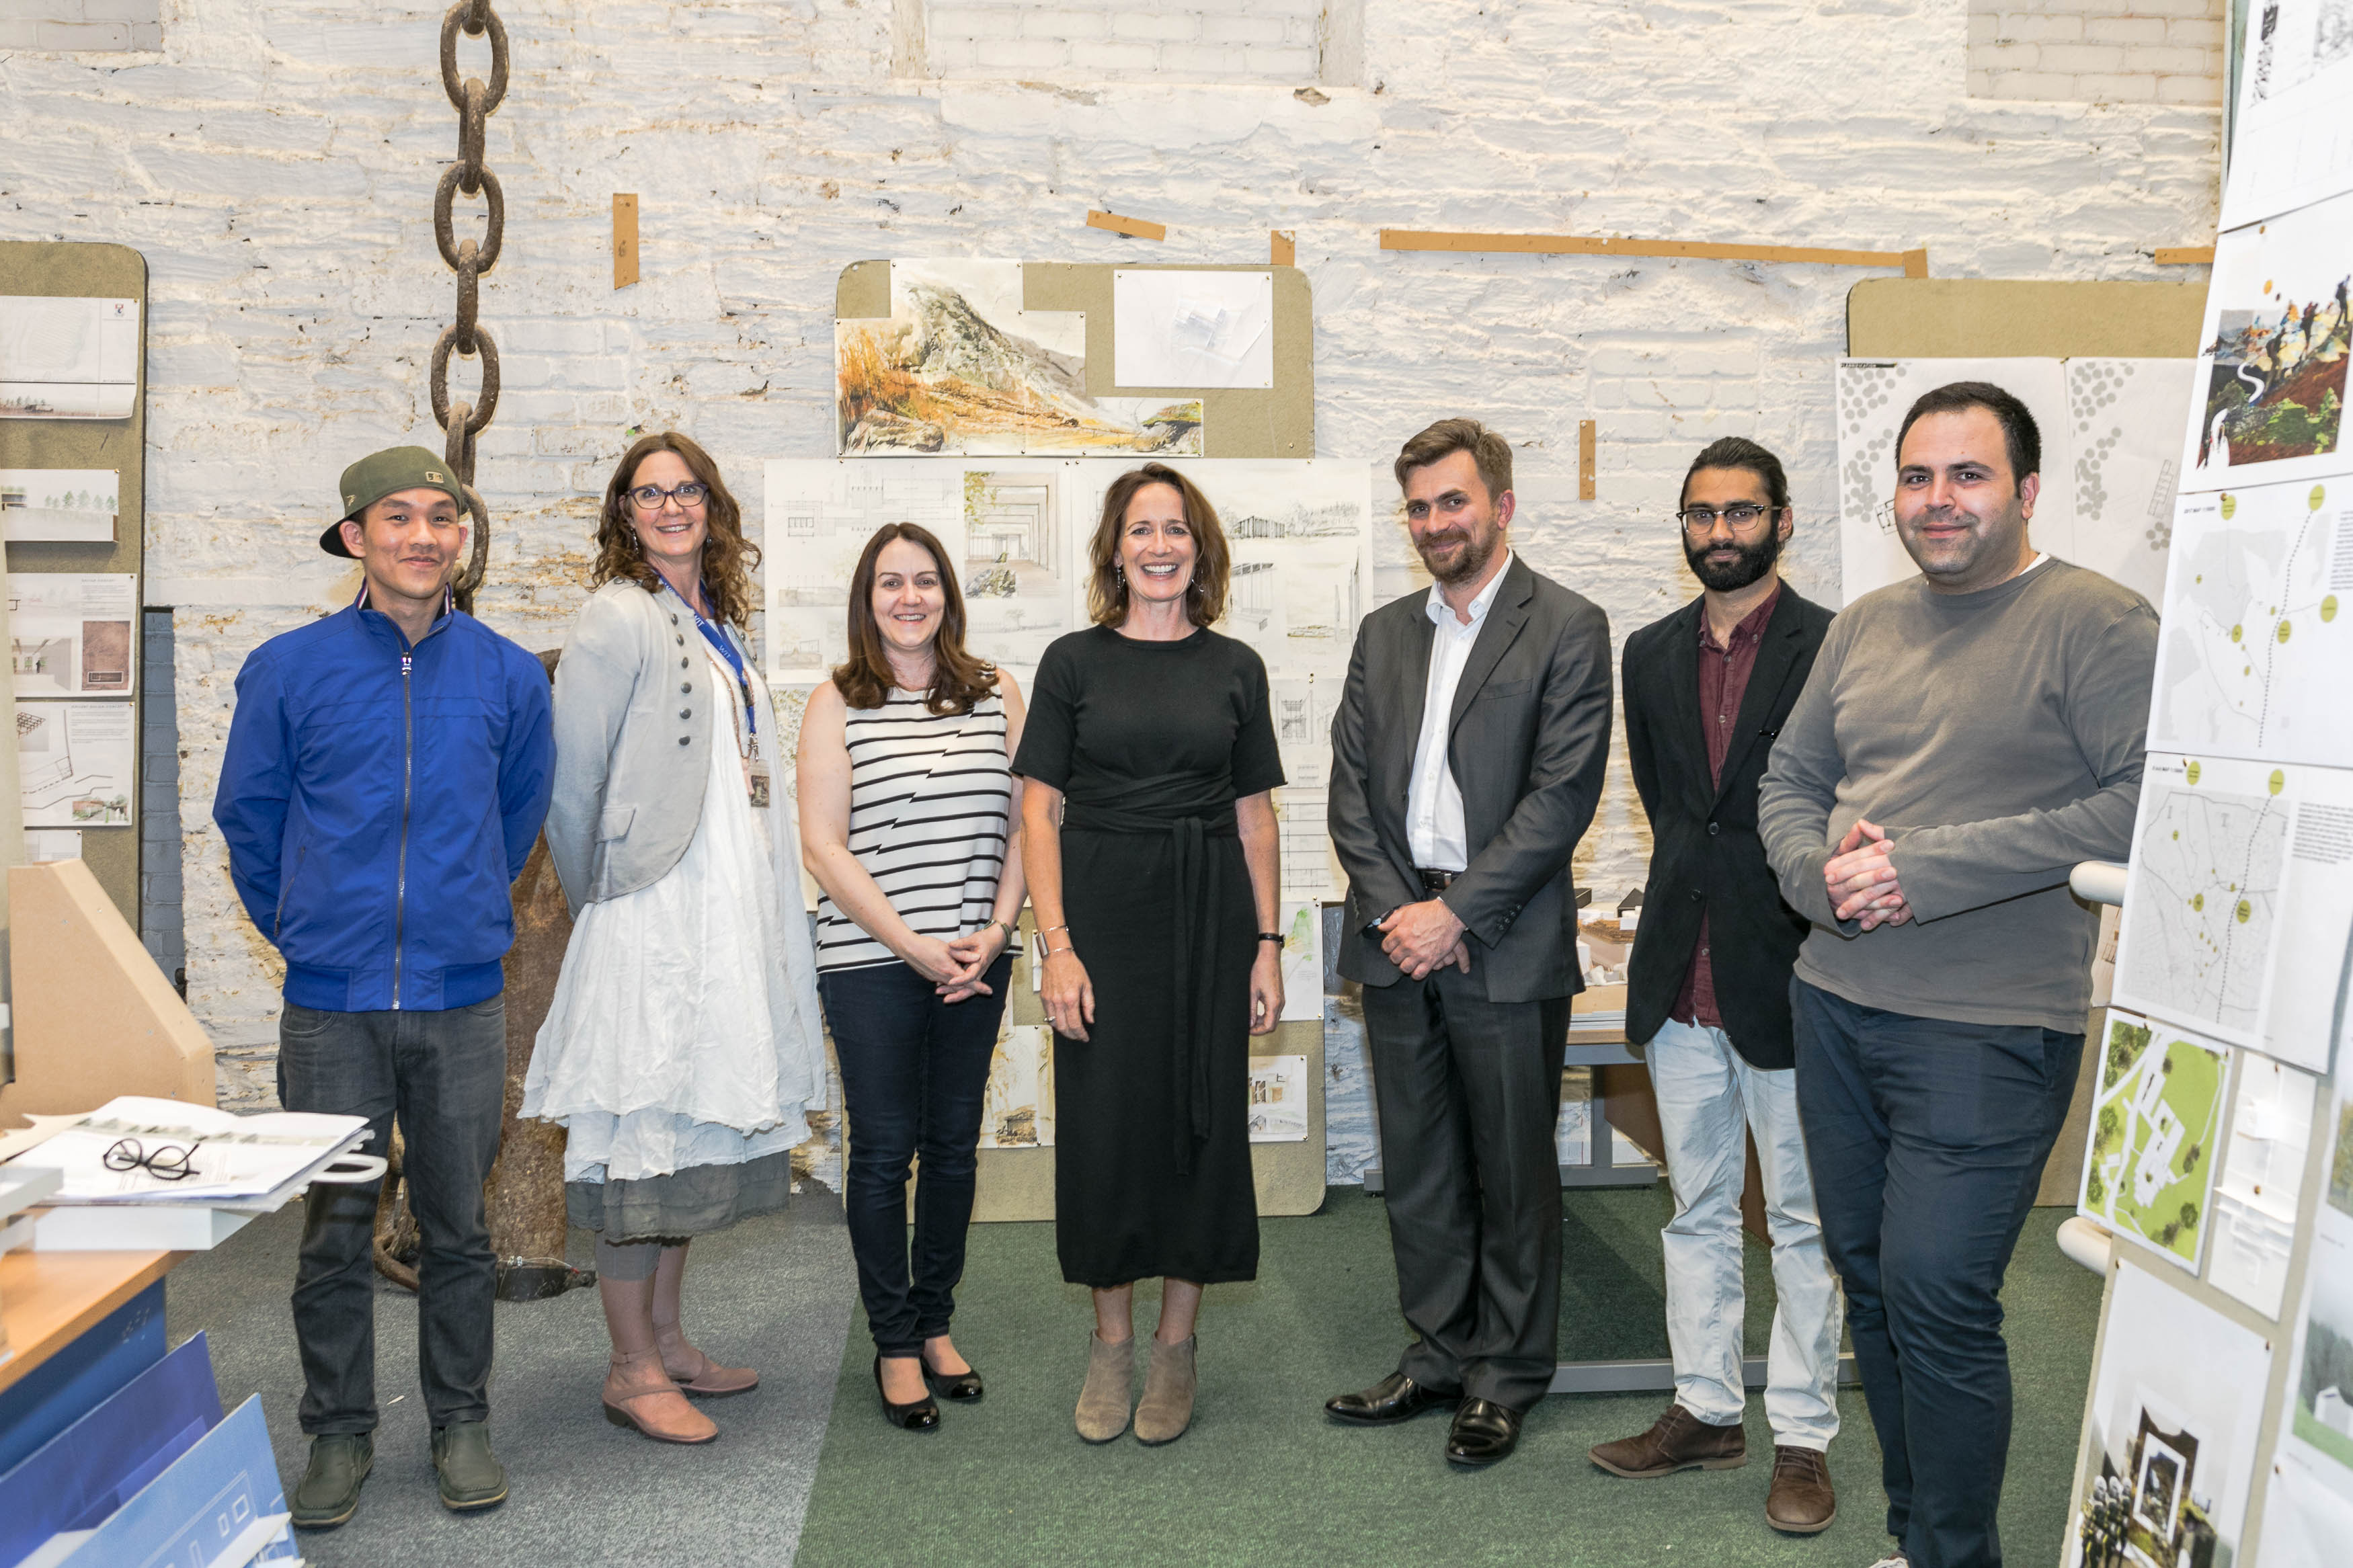 Andrew Yeoh, 4th year BArch, Jane Russell O'Connor WIT, Sharon O'Brien WIT, Ms Carole Pollard, President of the RIAI,  Aleksandar Kostić, Acting Head of the Department of Architecture, Gencho Dishev & Bilal Jawaheer both  4th Year BArch. Photo credit; Ann Power WIT